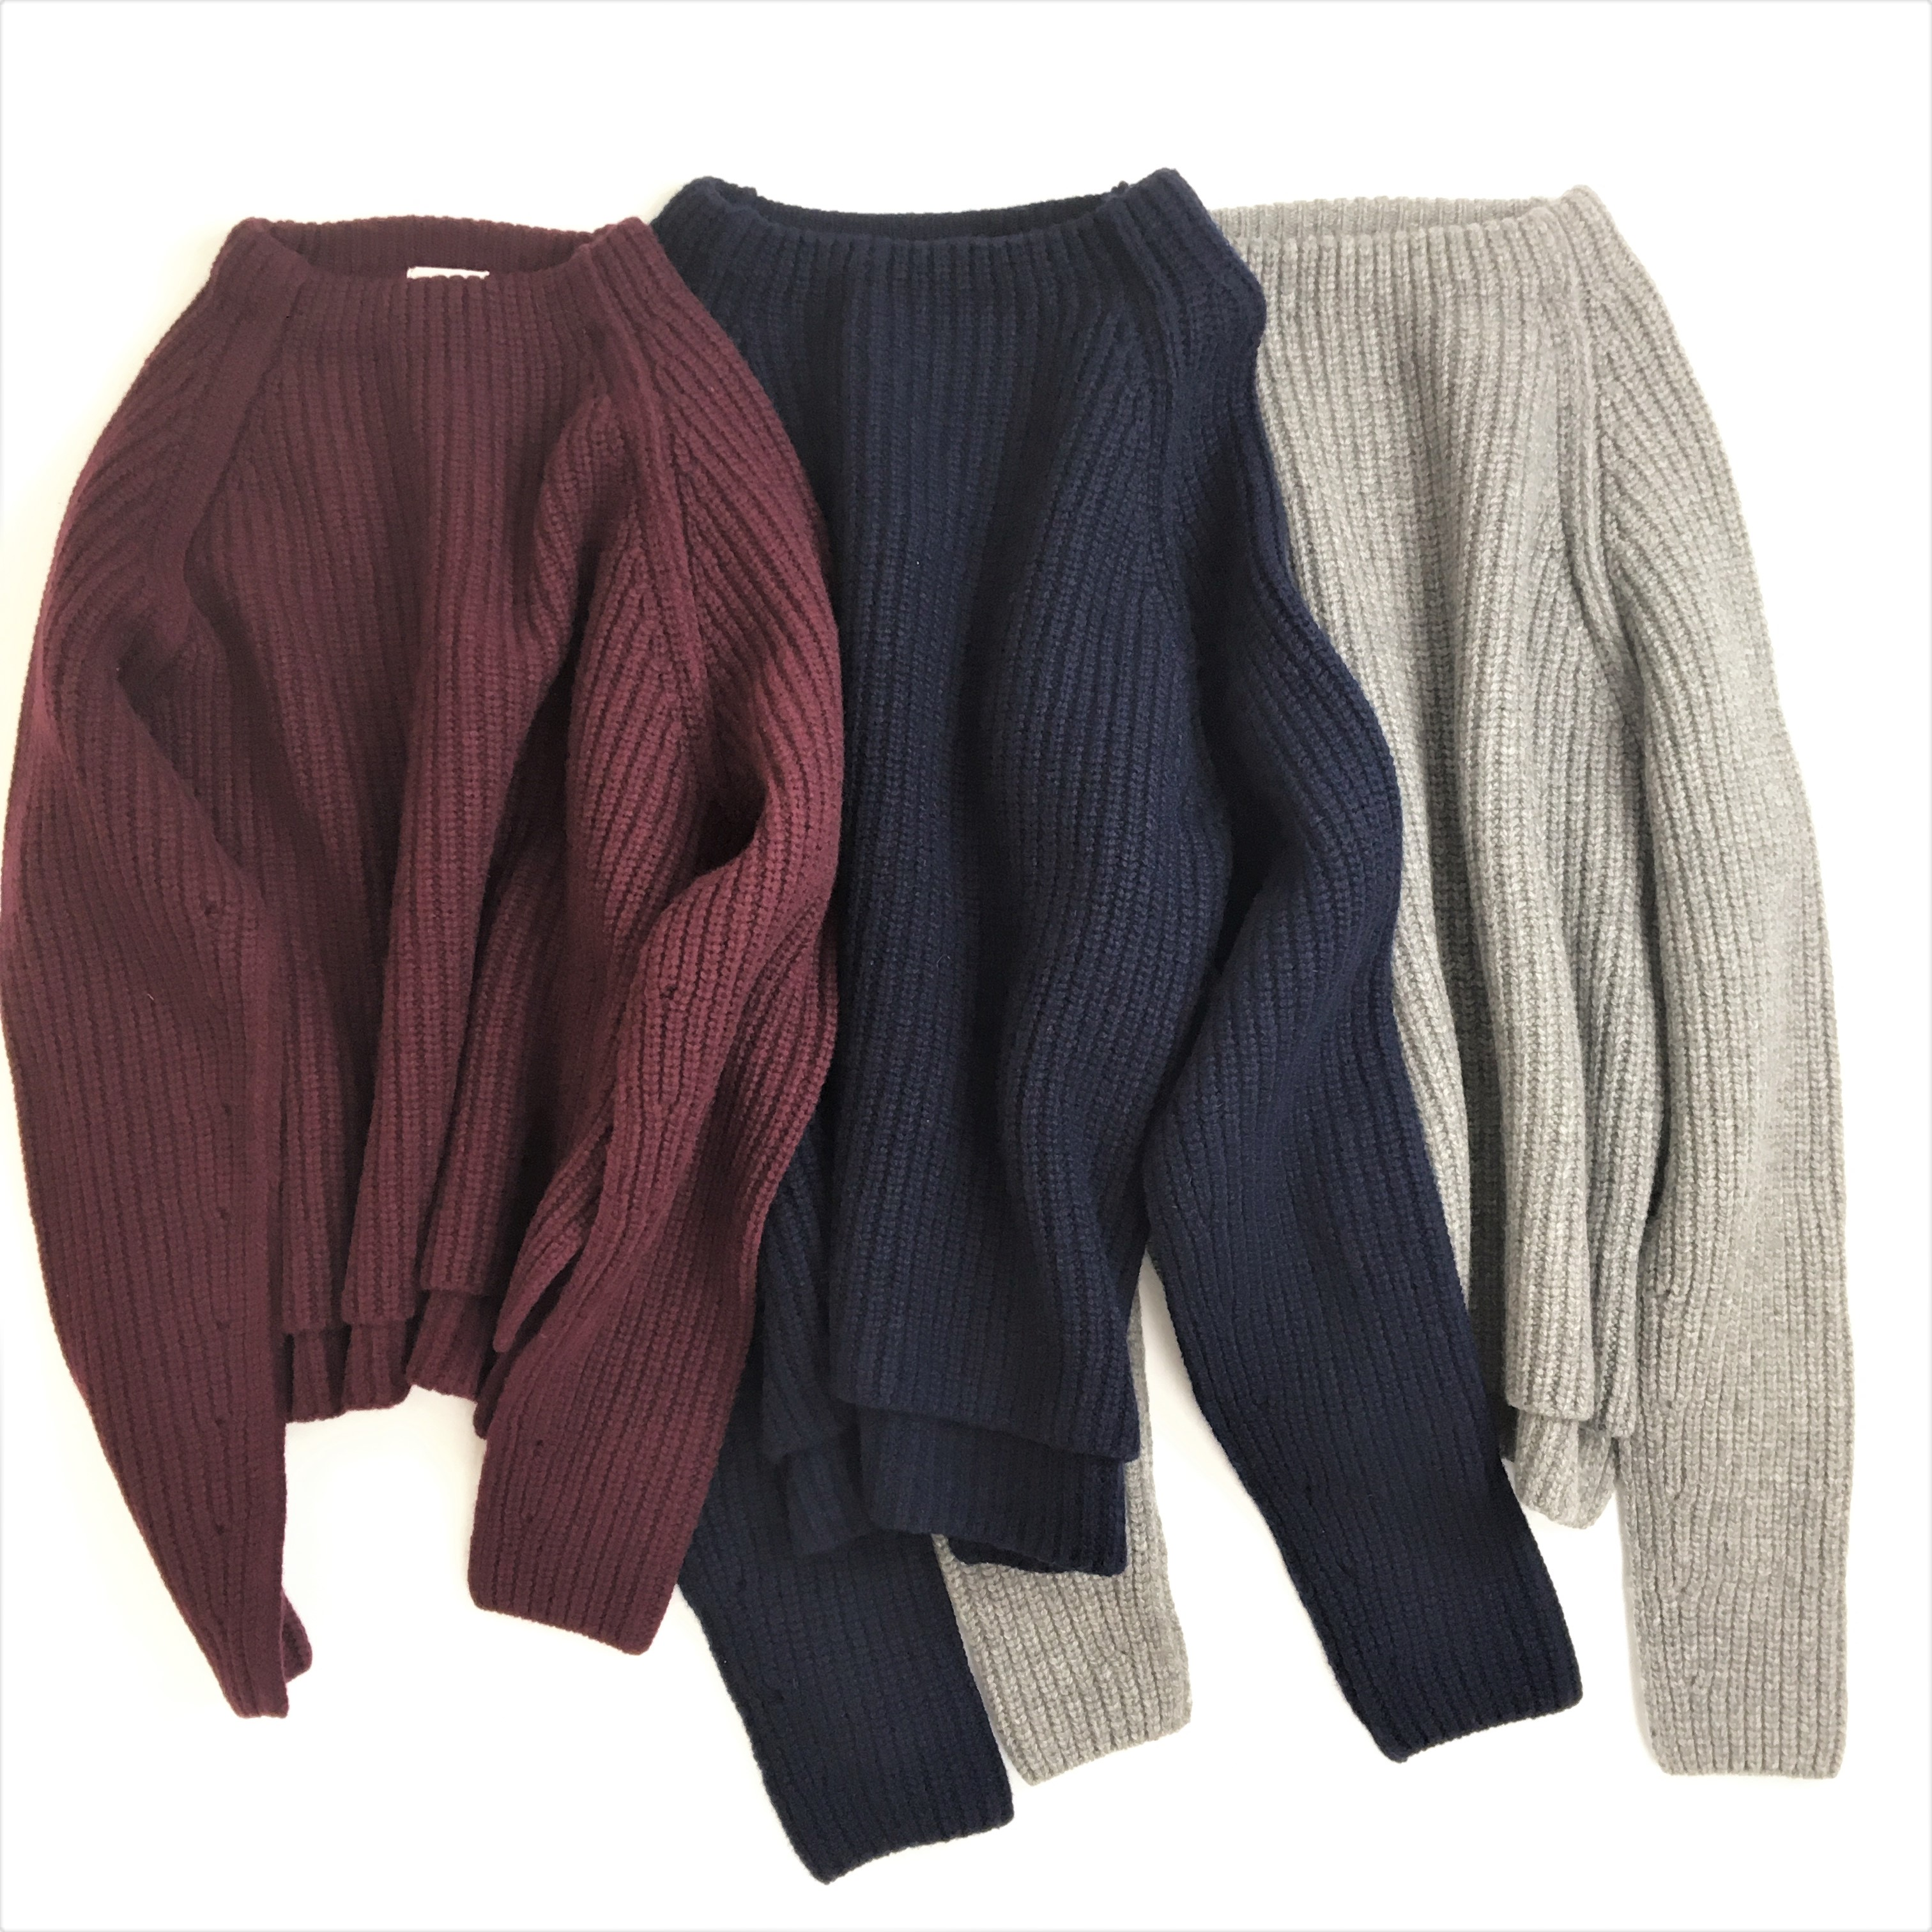 RECOMMEND:KNIT